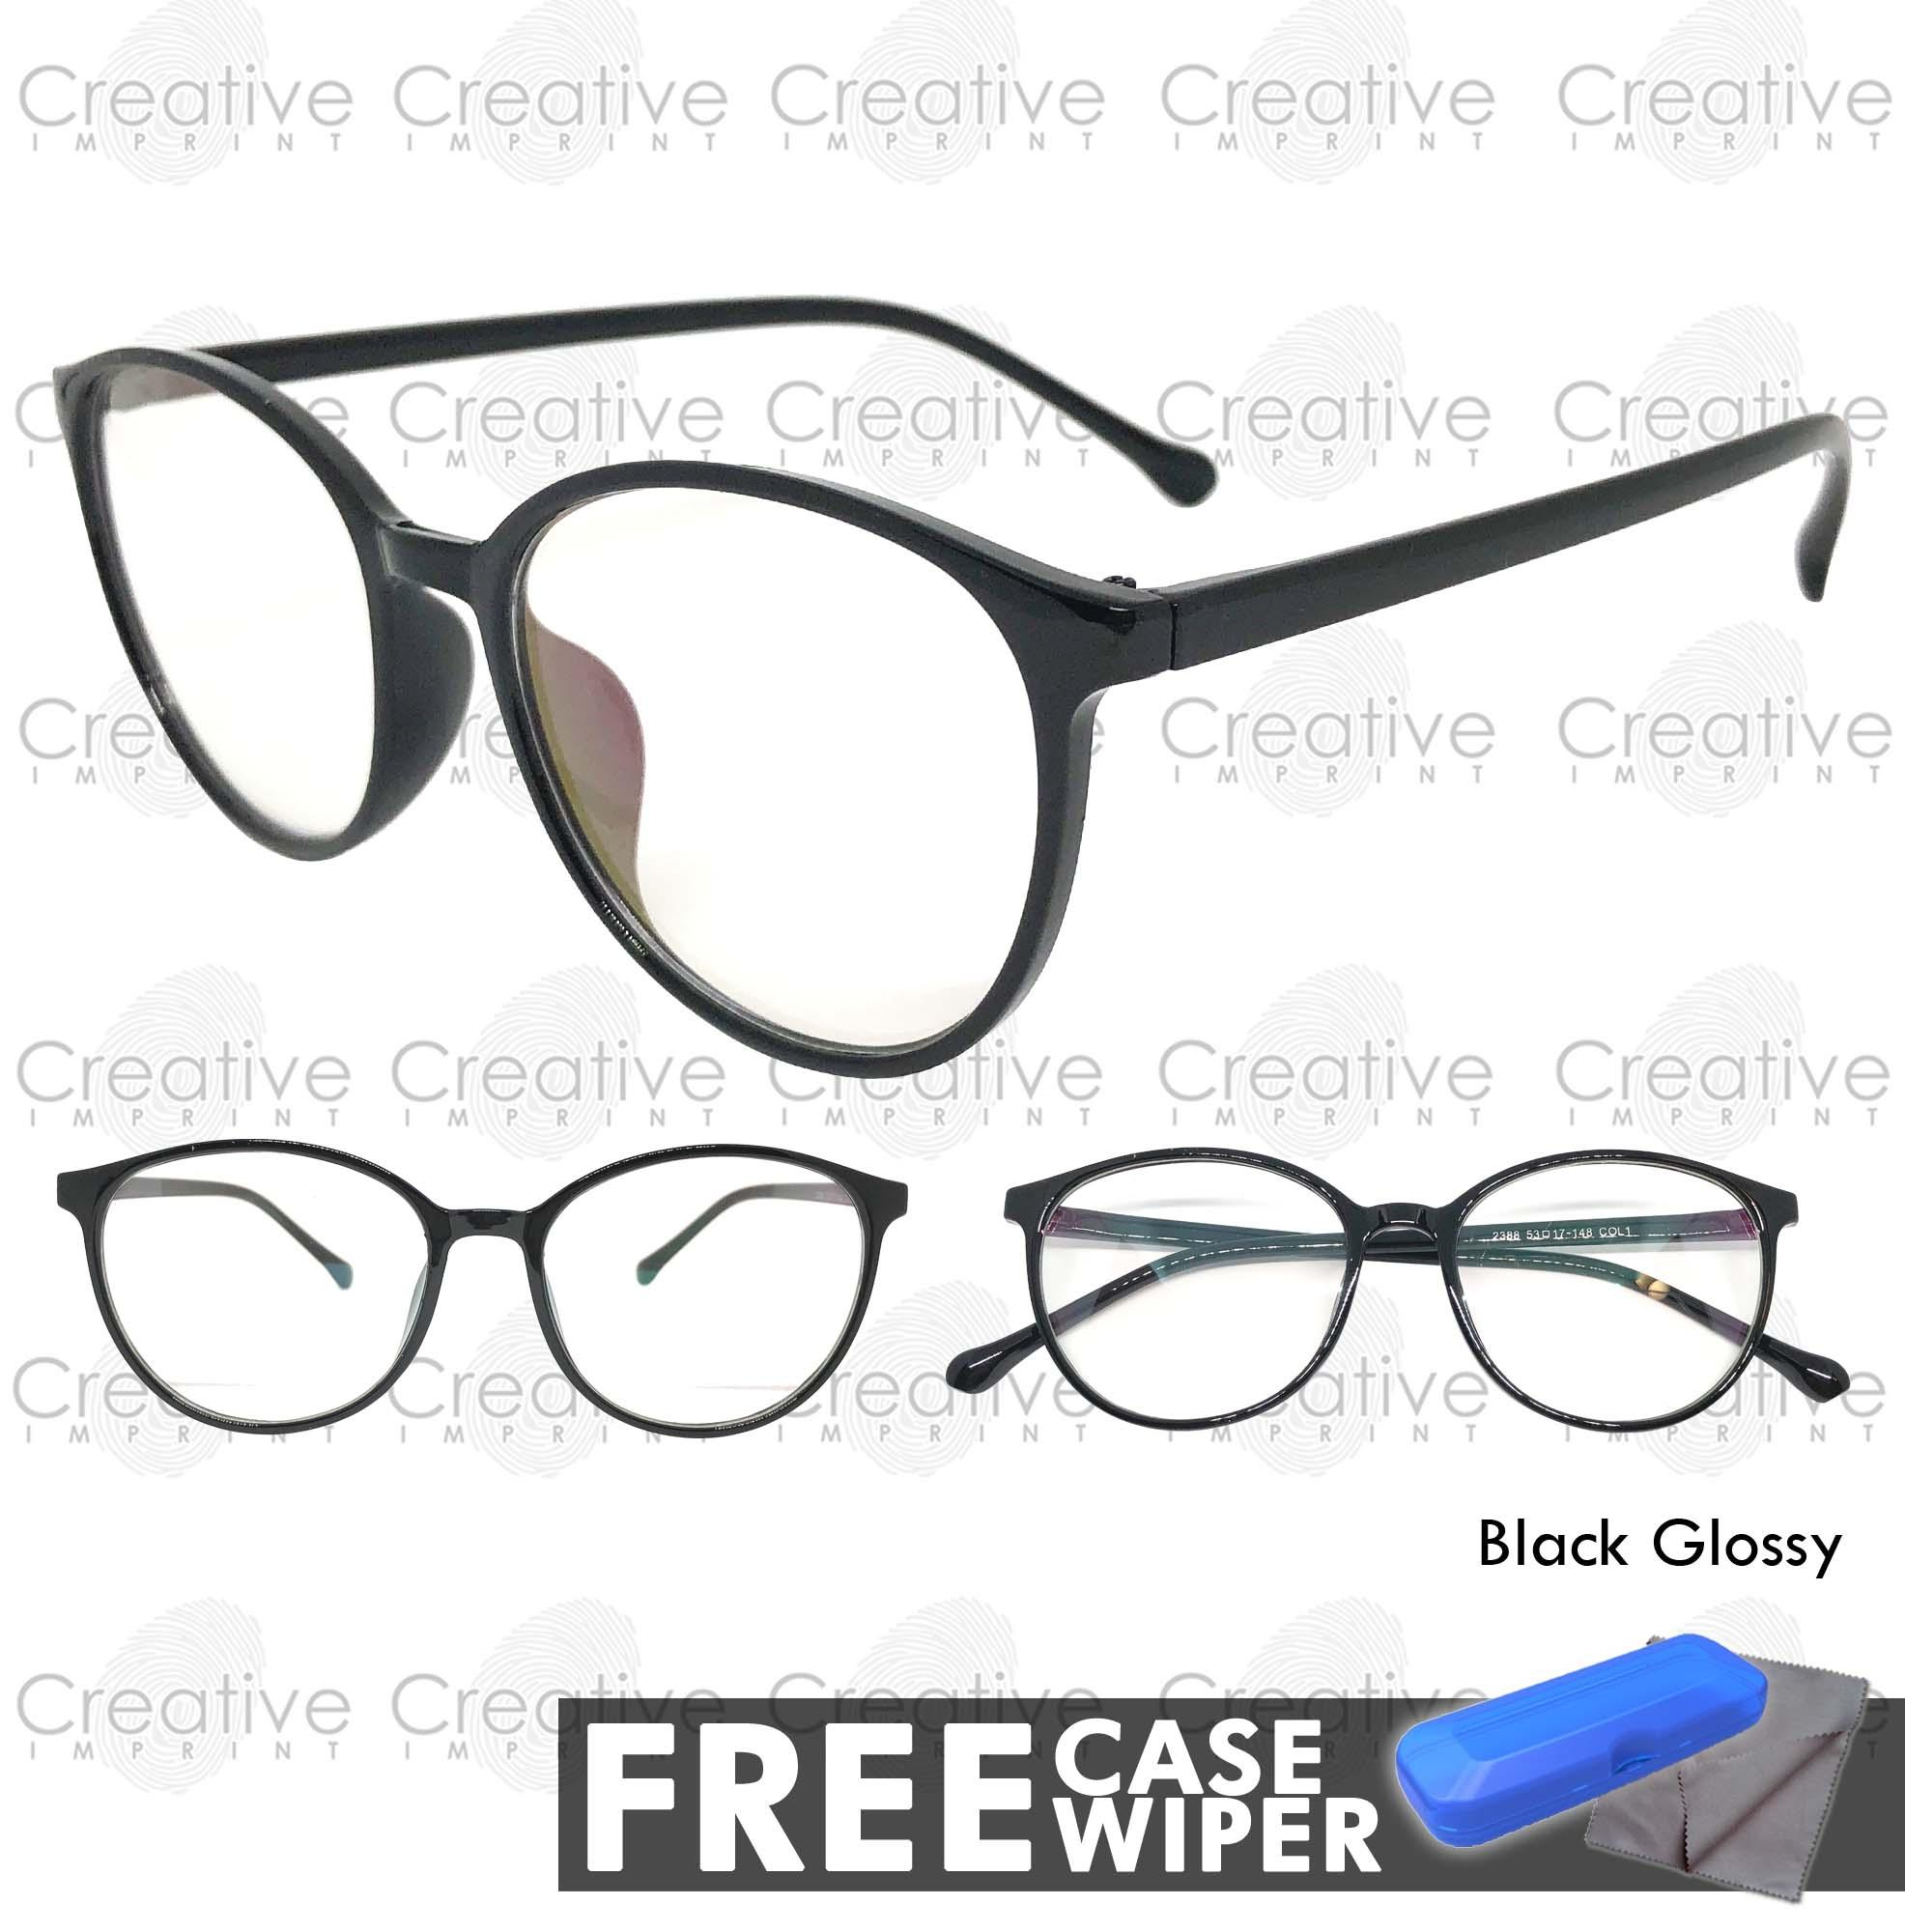 f9e9369349 Creative Imprint Eyeglasses Anti-Radiation Lens ( 05 Black Glossy)  Anti-Fatigue